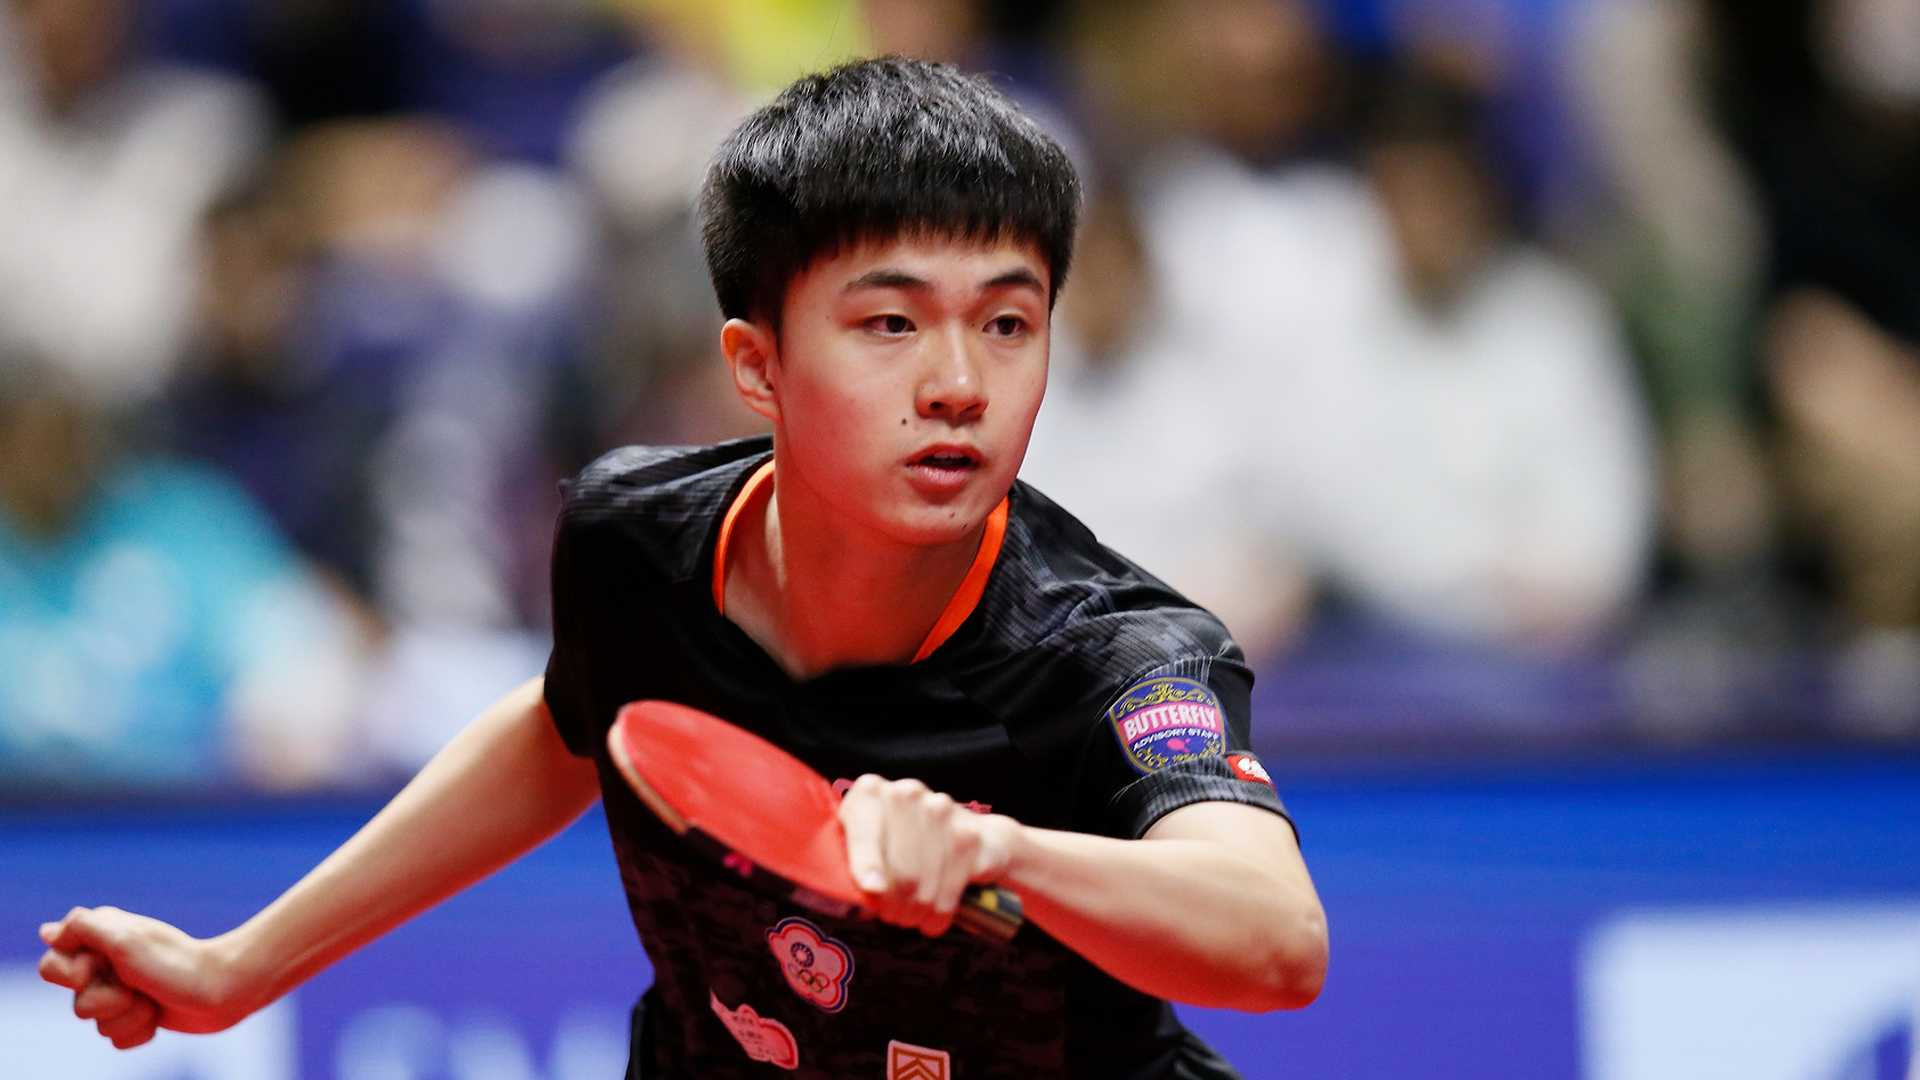 Lin Yun-ju of Chinese Taipei was the victor in the men's singles final at the ITTF Czech Open ©ITTF